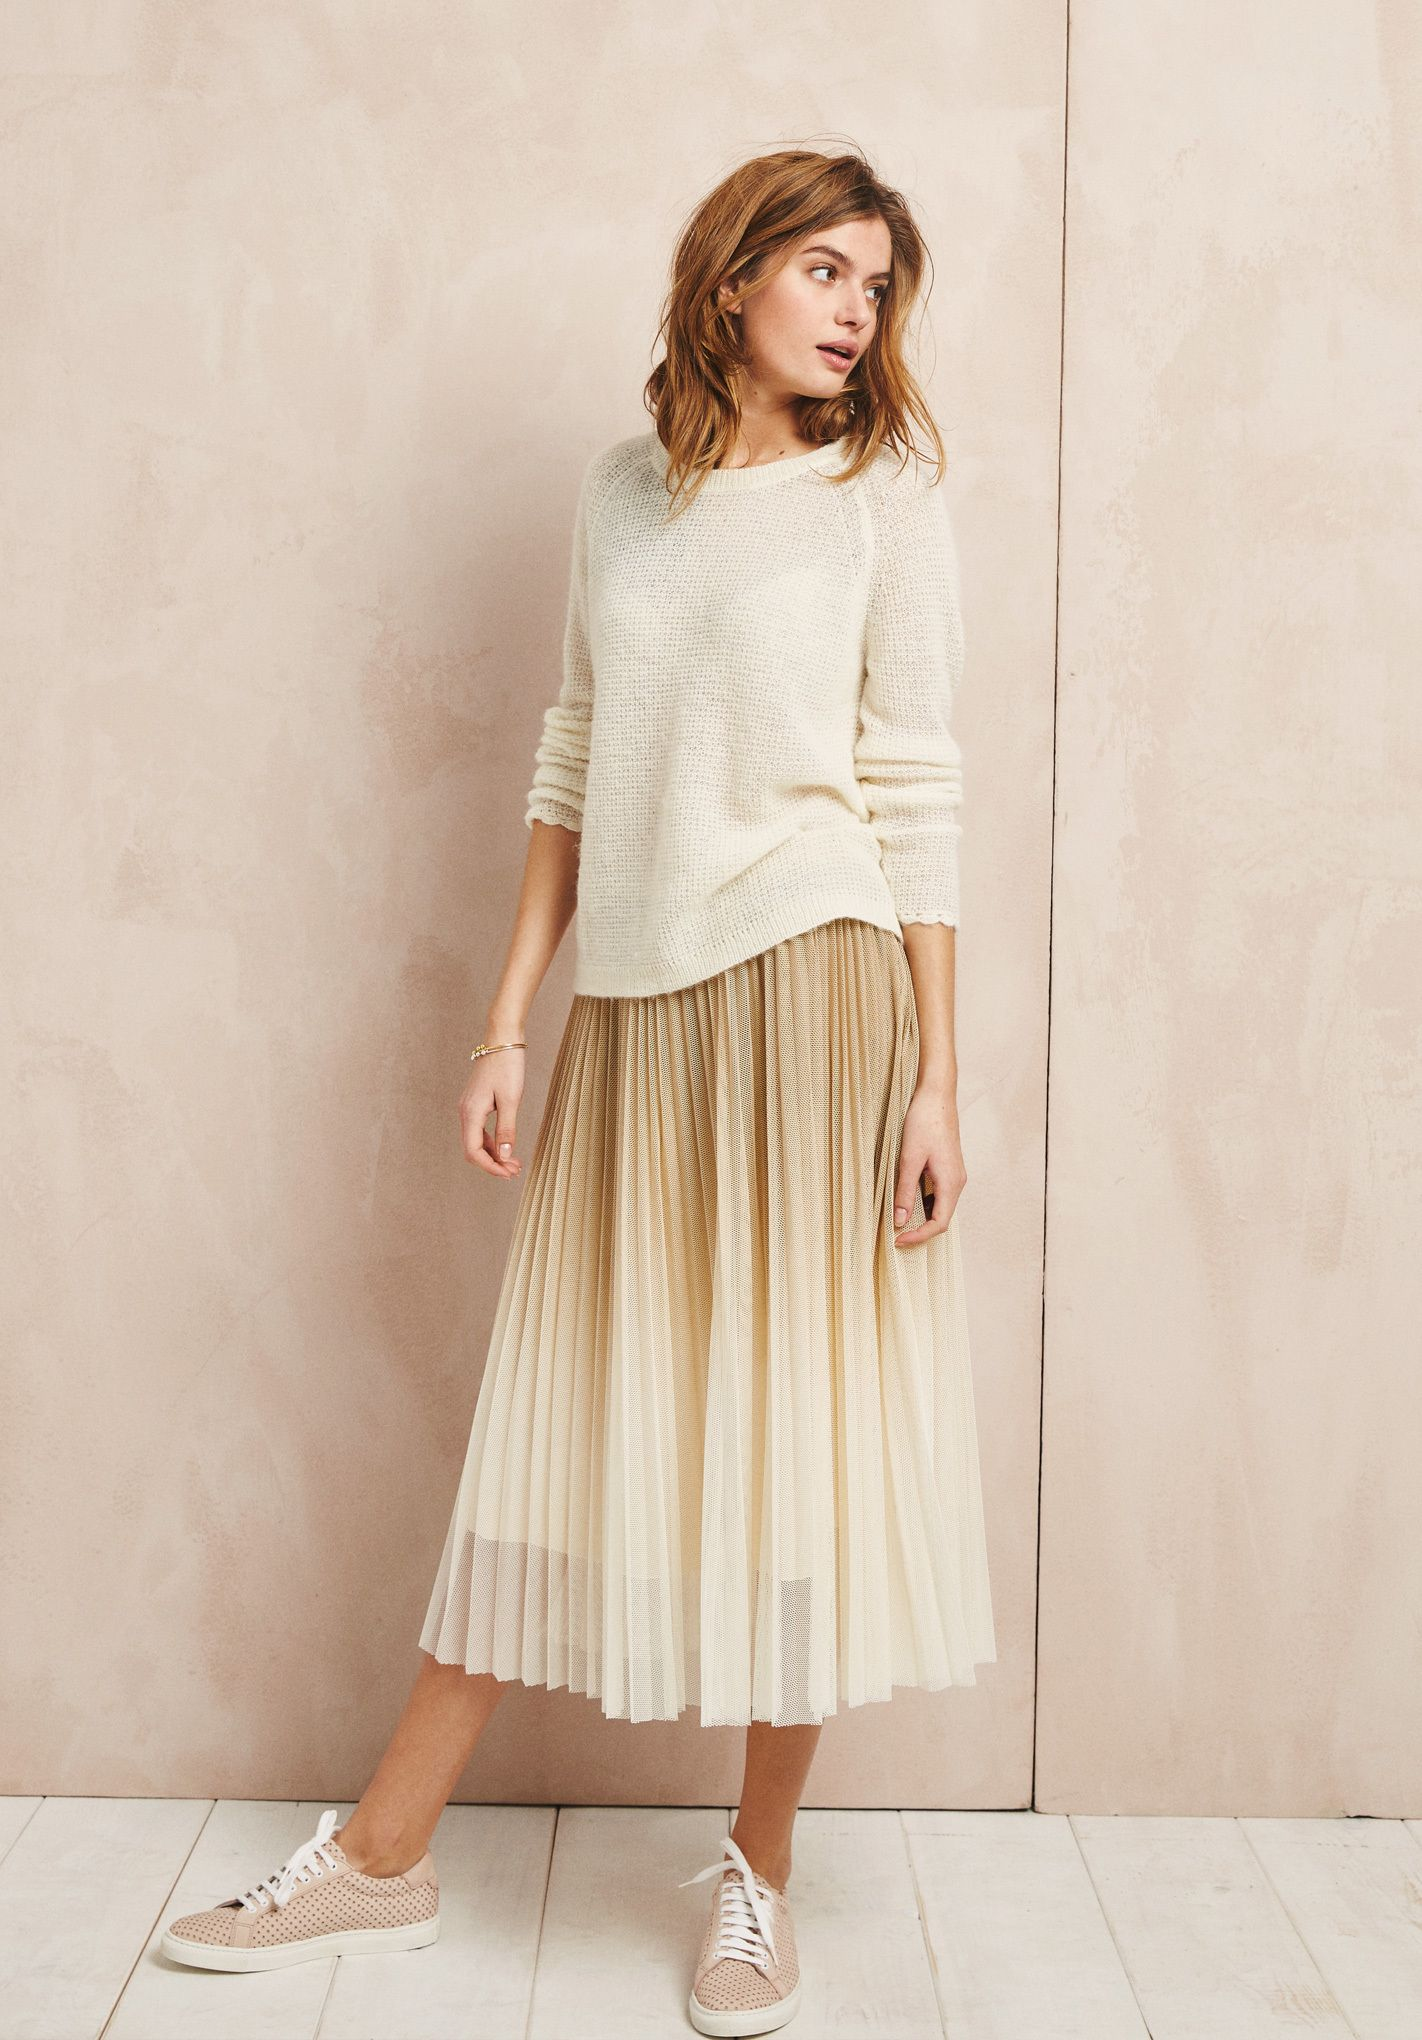 Ombre Skirt by Hush.